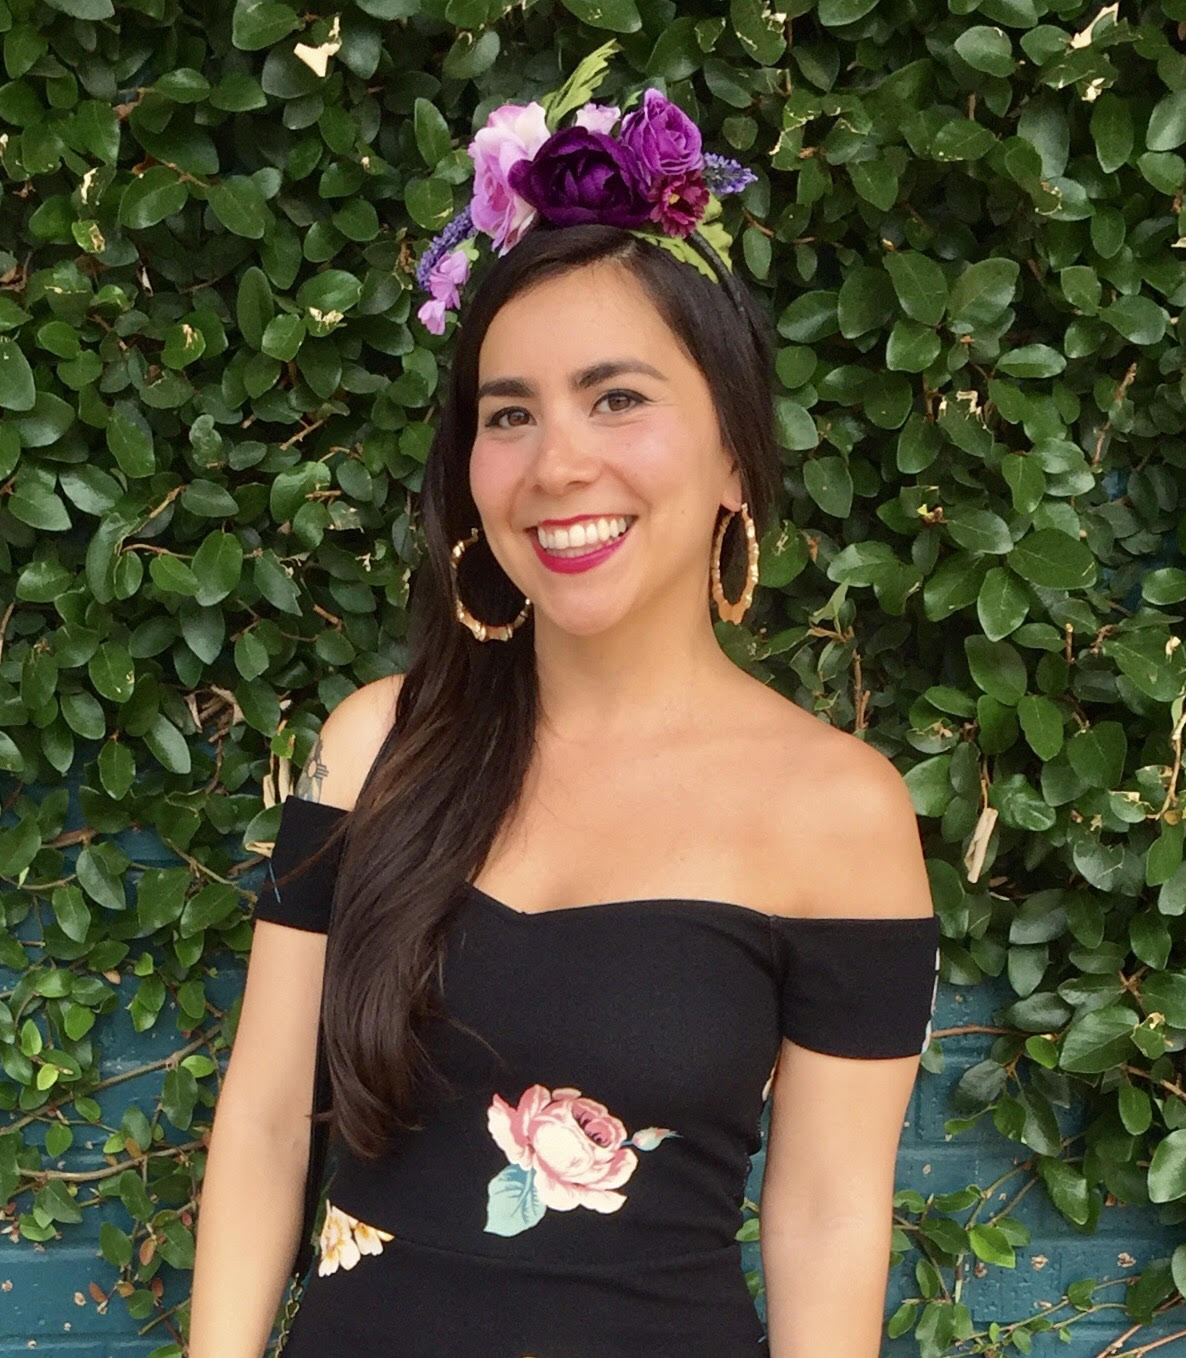 - Yvette DeChavez was born and raised in San Antonio, Texas. She sees her work as an opportunity to explore mental health issues and heal from intergenerational traumas. She writes a lot. She never reads enough. And she always thinks too much. Also, she has a PhD in literature, which is pretty cool.Yvette is currently a postdoctoral lecturer at the University of Texas at Austin. Follow her on Instagram: @yvettedontlieReach her by email: ymdechavez@gmail.com